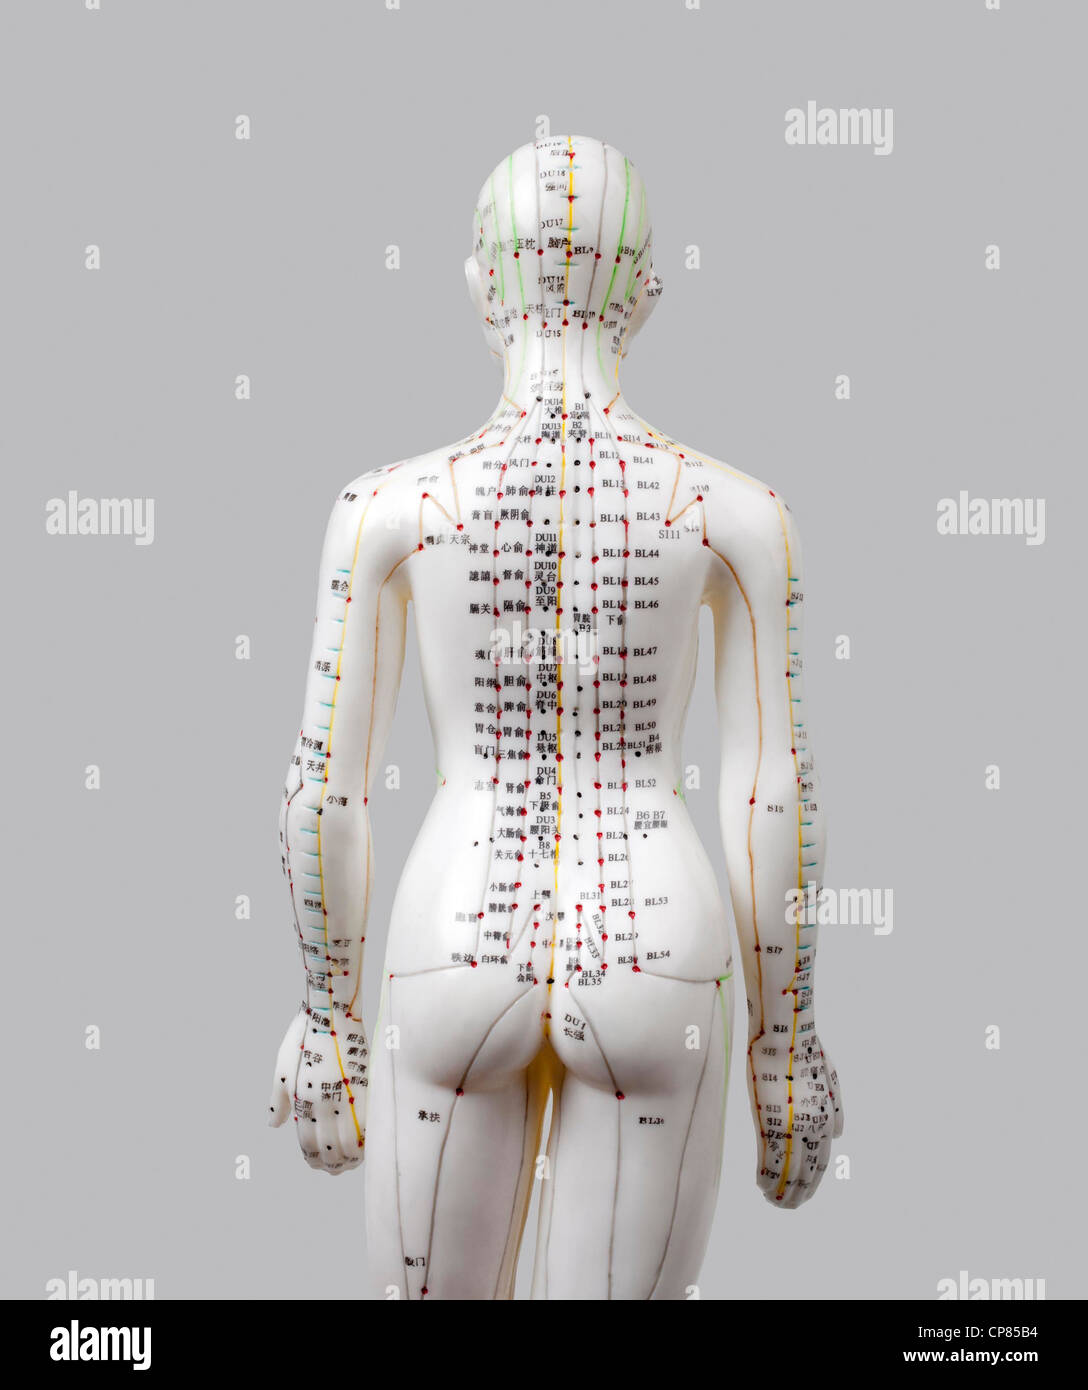 A female model with marked acupuncture points, Chinese characters on the meridians, traditional Chinese medicine; - Stock Image